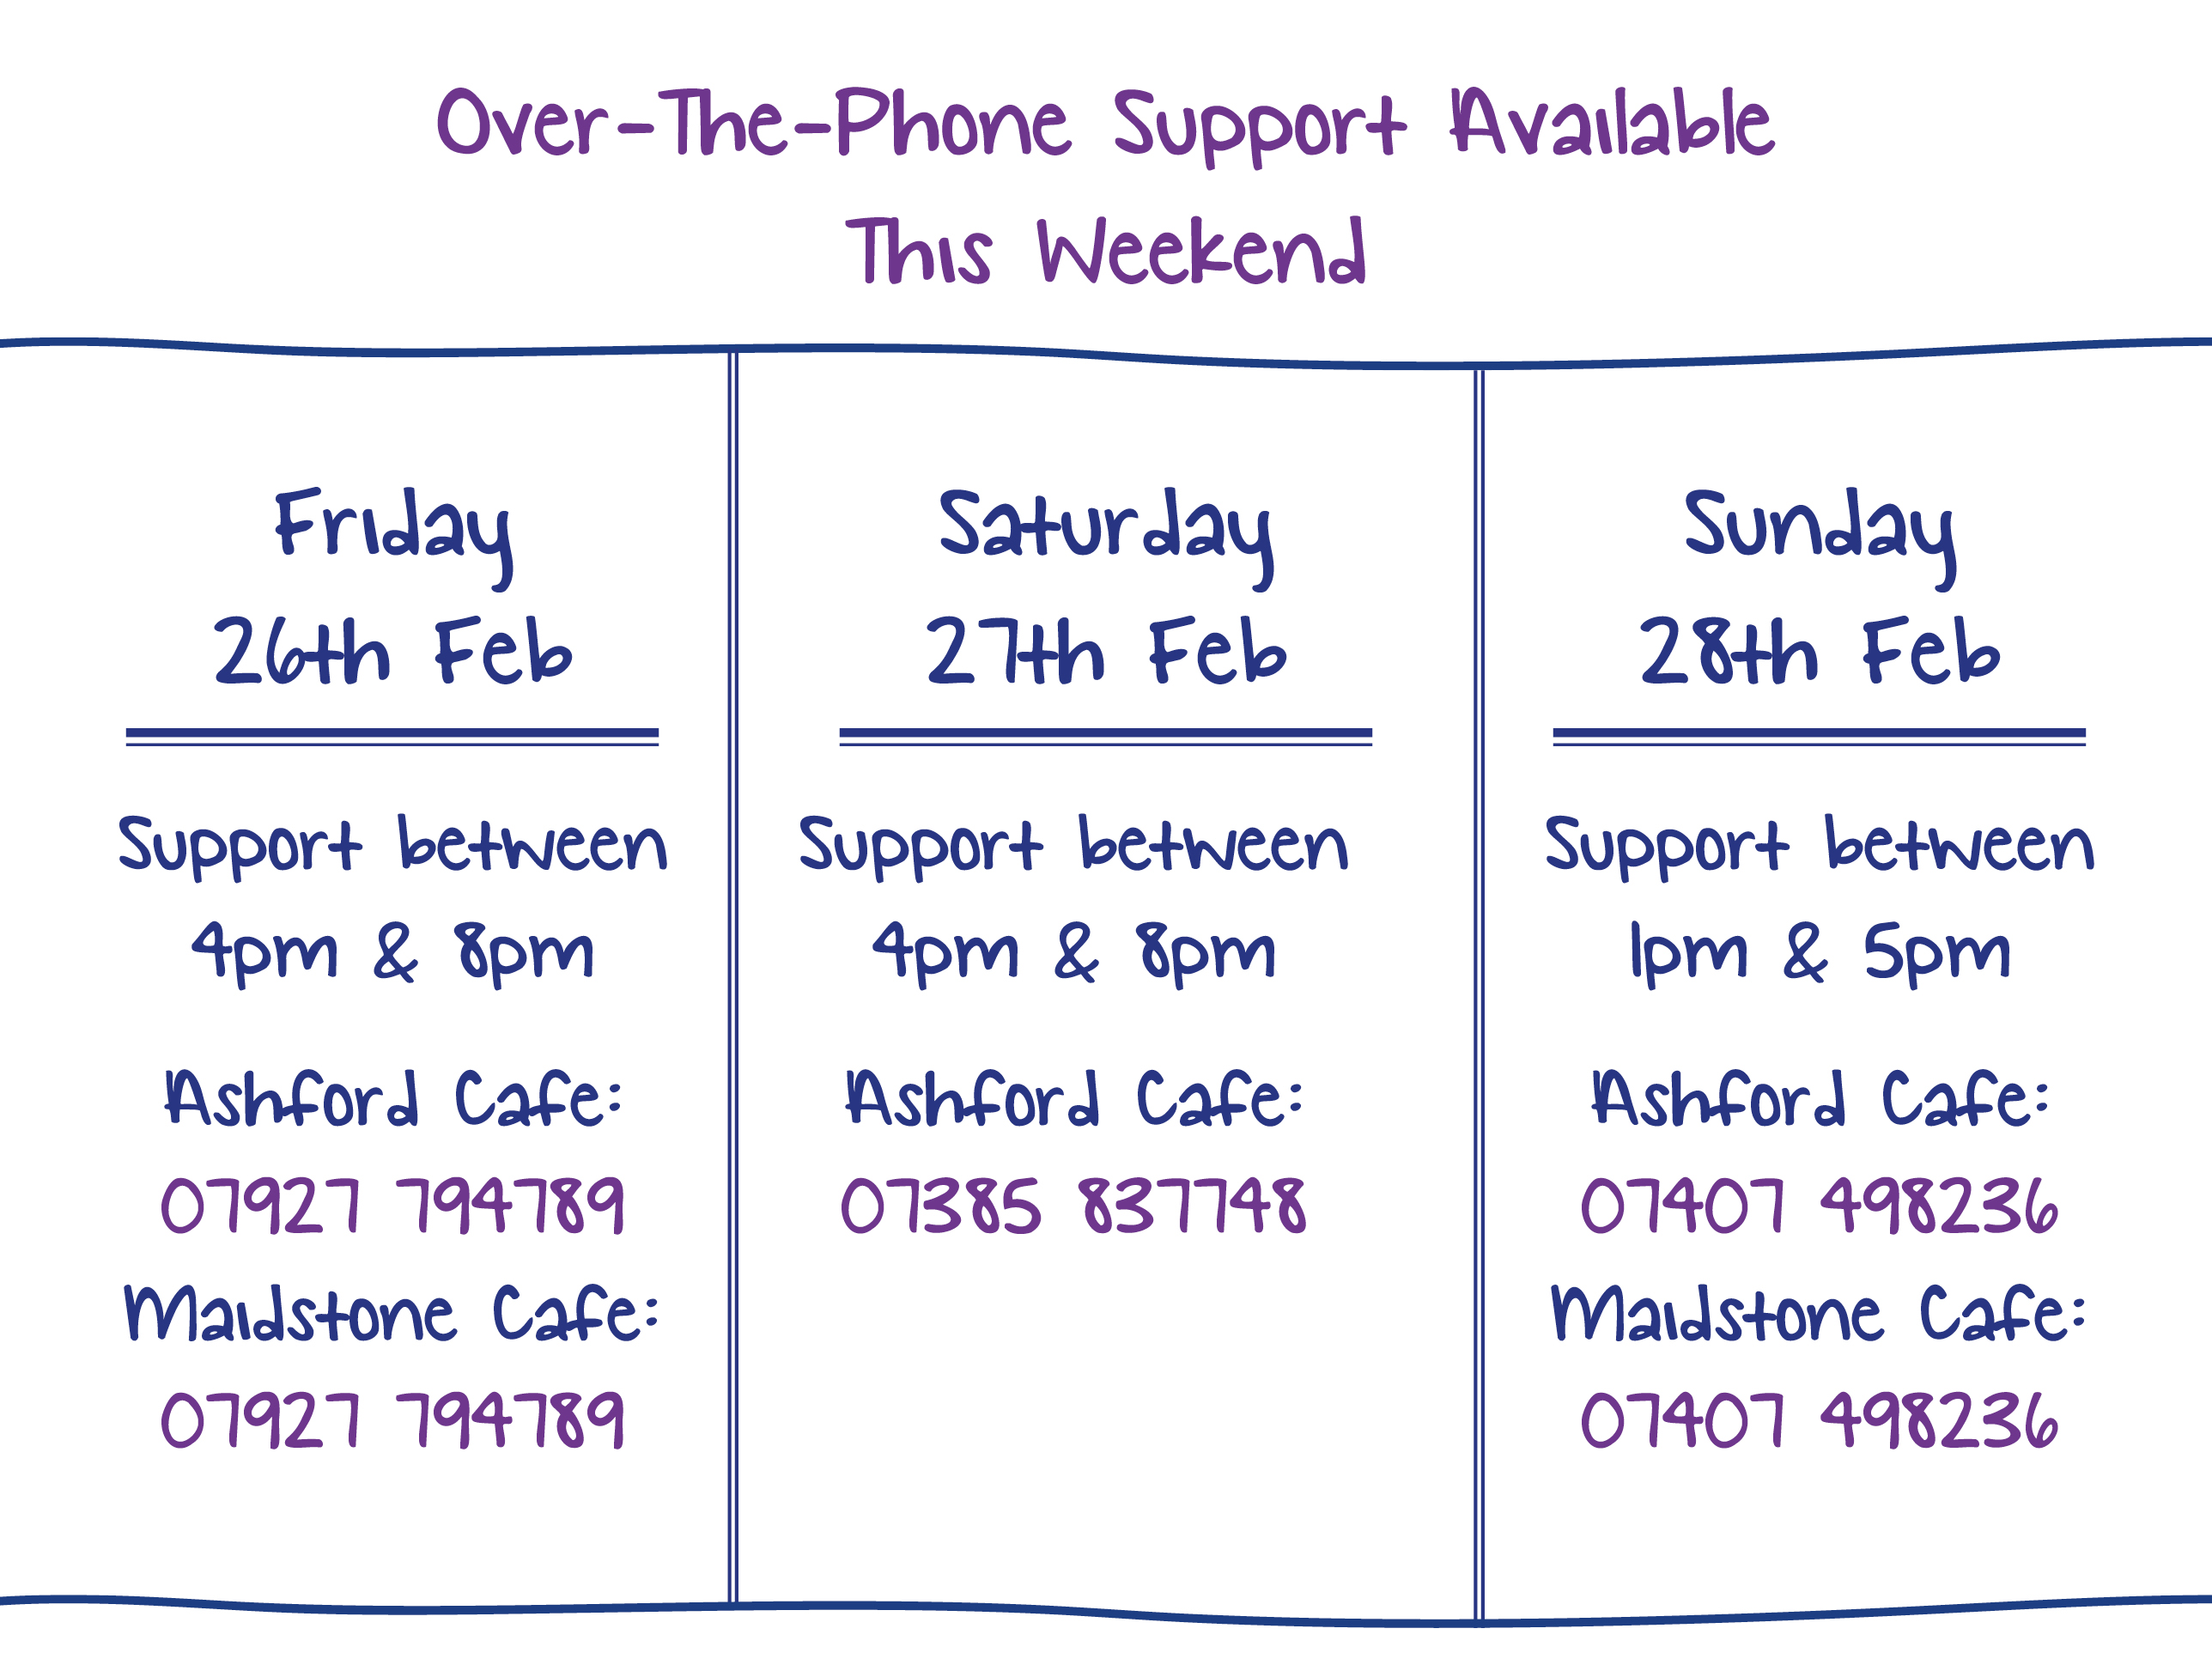 Over-The-Phone Support Available  This Weekend. Friday 26th Feb. Support between 4pm & 8pm Ashford Cafe: 07927 794789 Maidstone Cafe: 07927 794789. Saturday 27th Feb. Support between 4pm & 8pm Ashford Cafe:  07385 837748. Sunday 28th Feb. Support between 1pm & 5pm Ashford Cafe: 07407 498236 Maidstone Cafe: 07407 498236